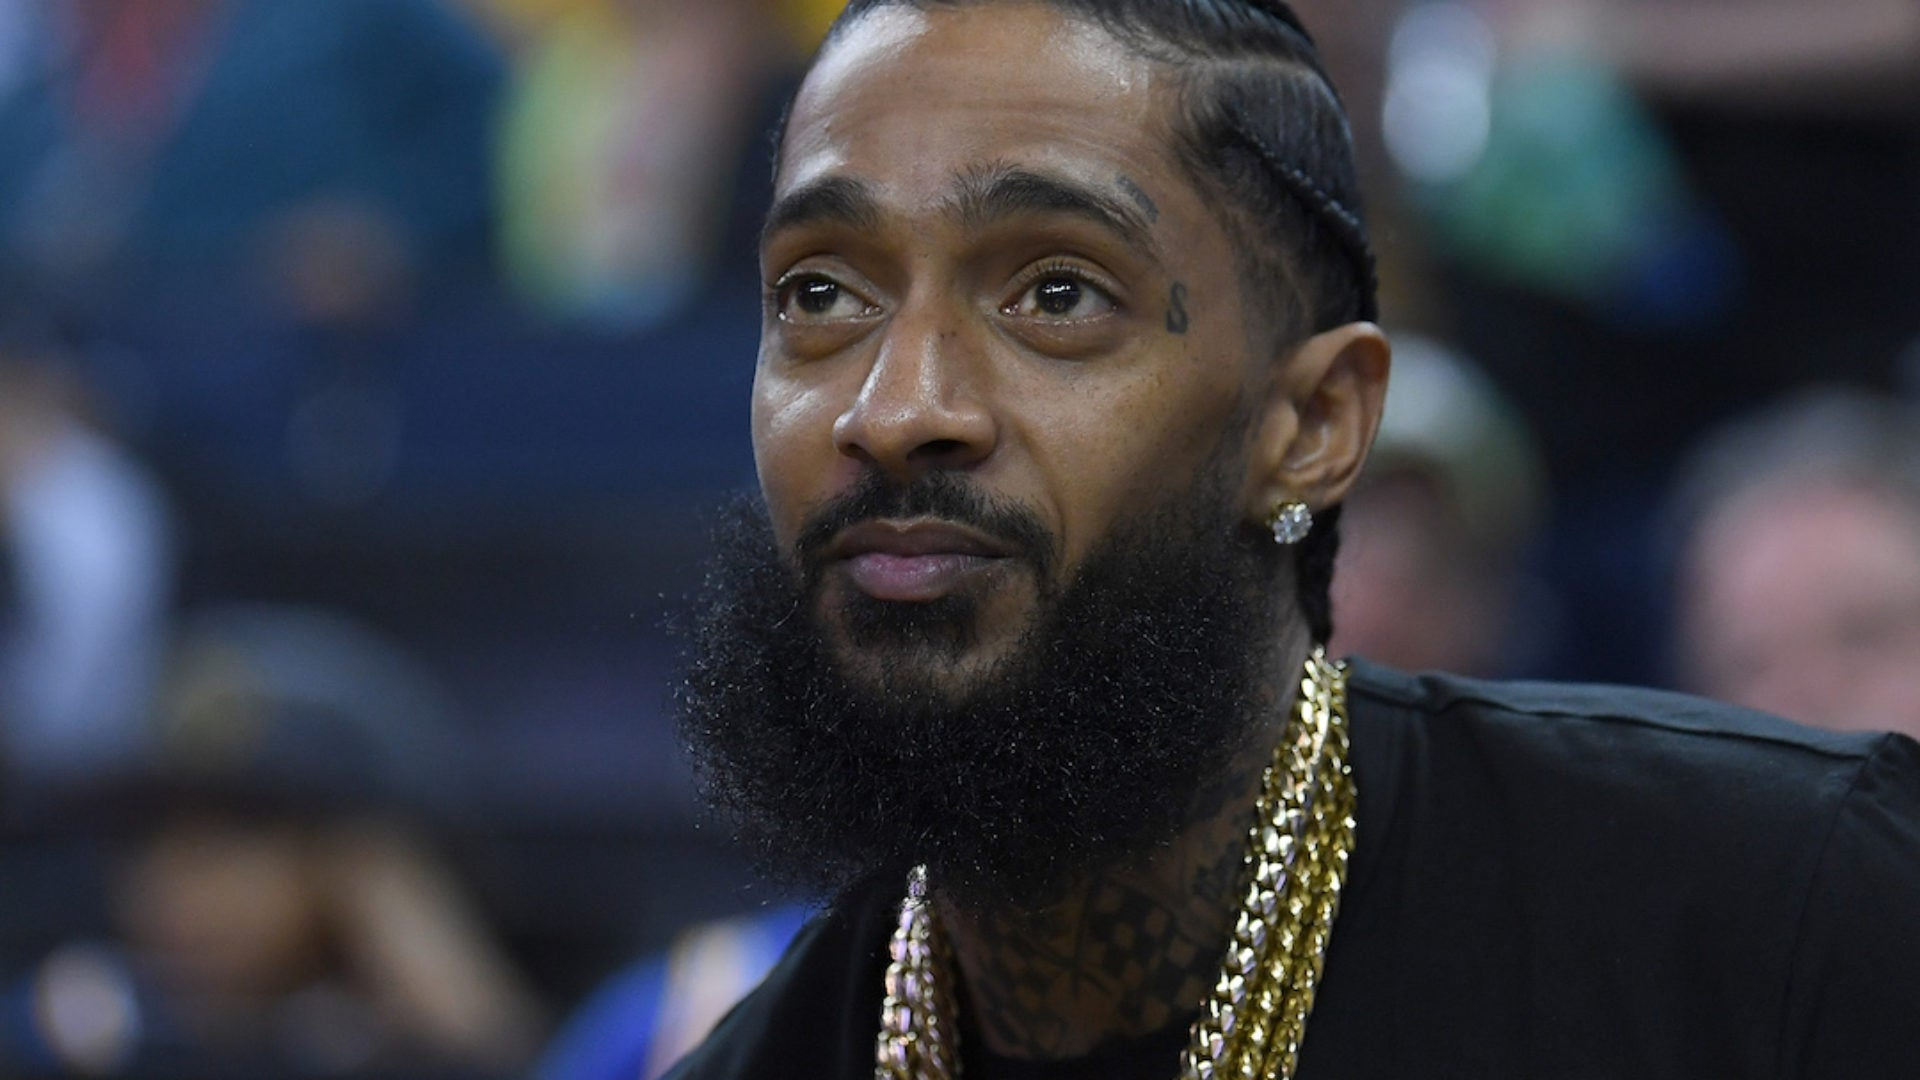 LAPD Investigating Why Key Witness Was Turned Away In Nipsey Hussle Case